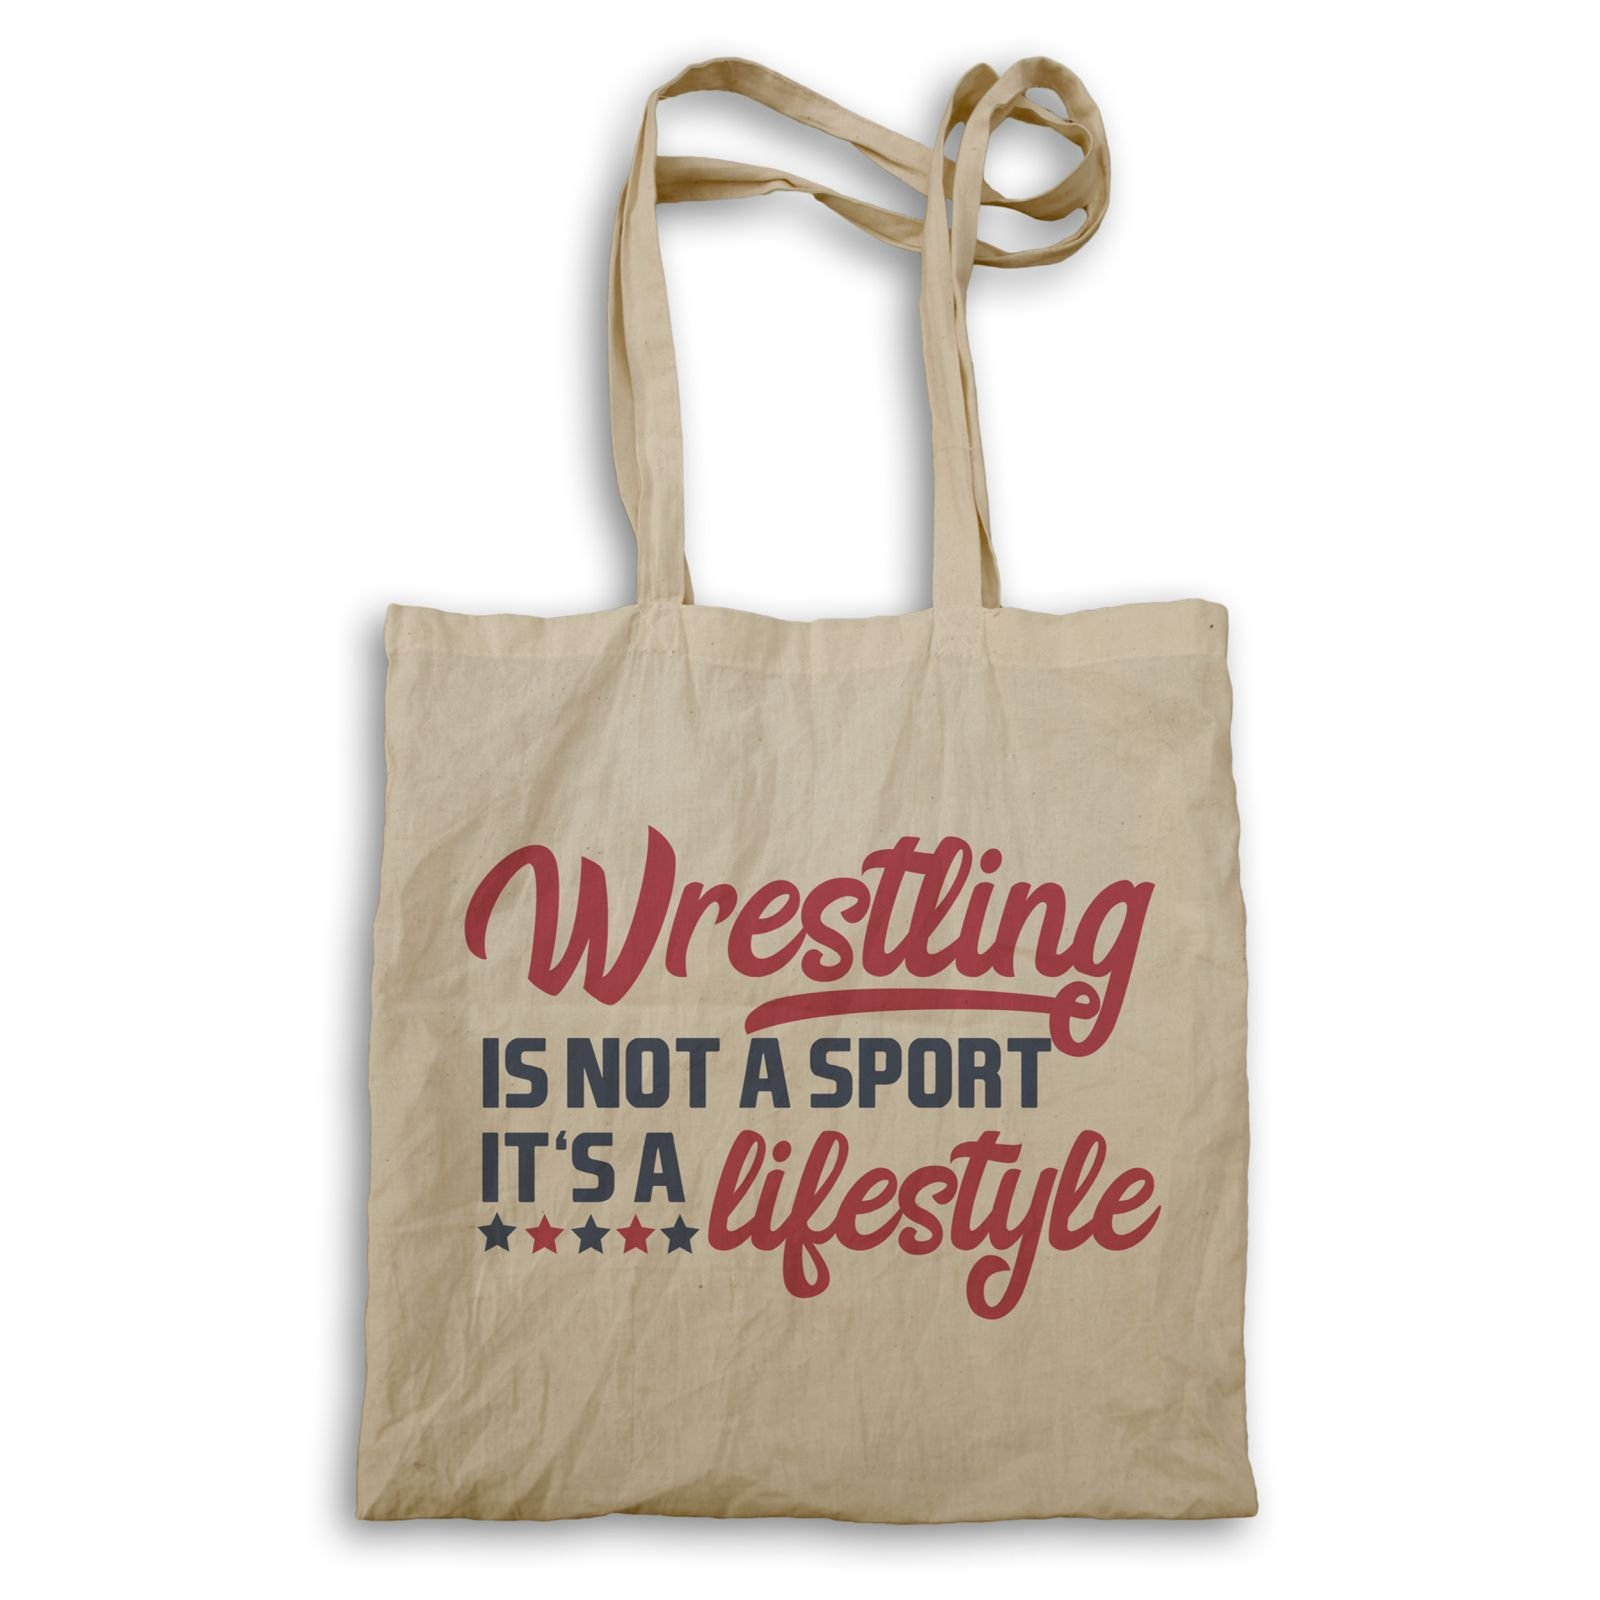 Wrestling Is Not A Sport It'S A Lifestyle Tote bag s573r